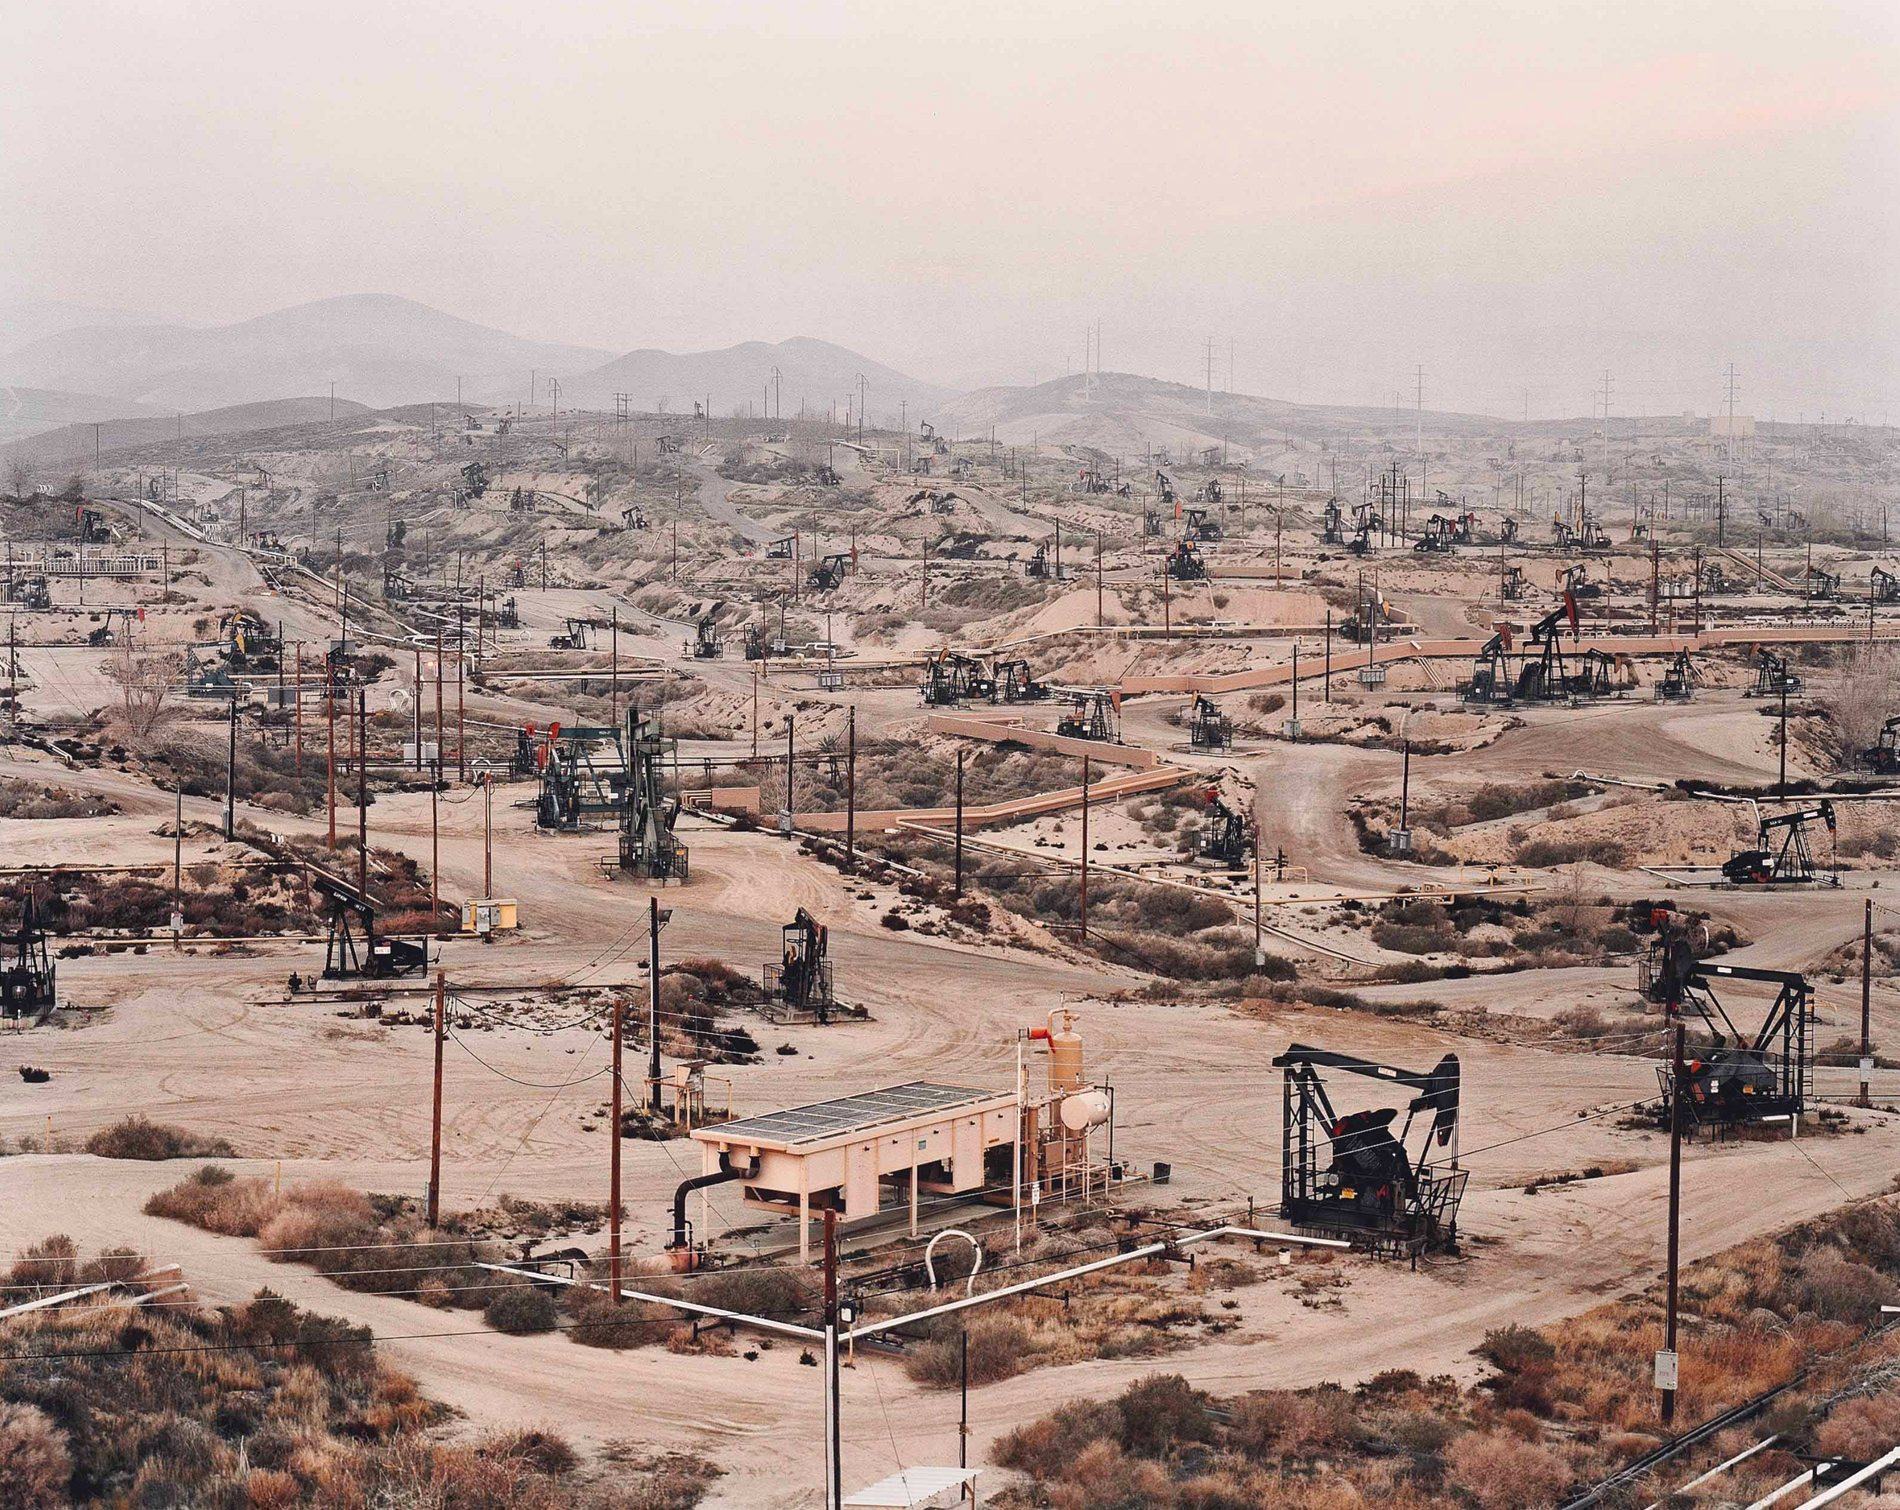 Edward Burtynski Photographie Oil Fields No13 Taft Californie 2002